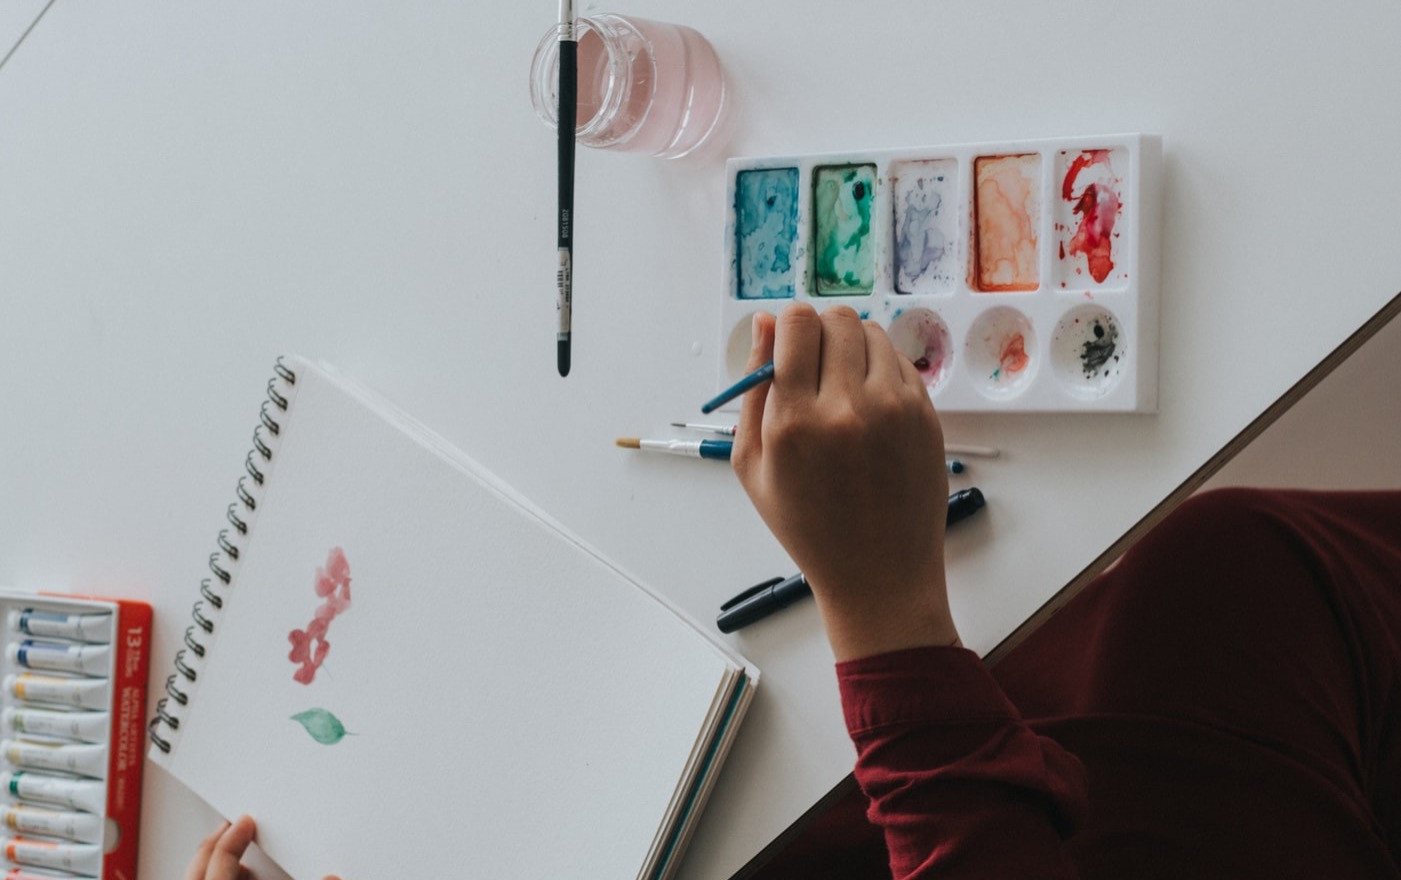 Dealing With Anxiety: Could Art Therapy Be The Solution?